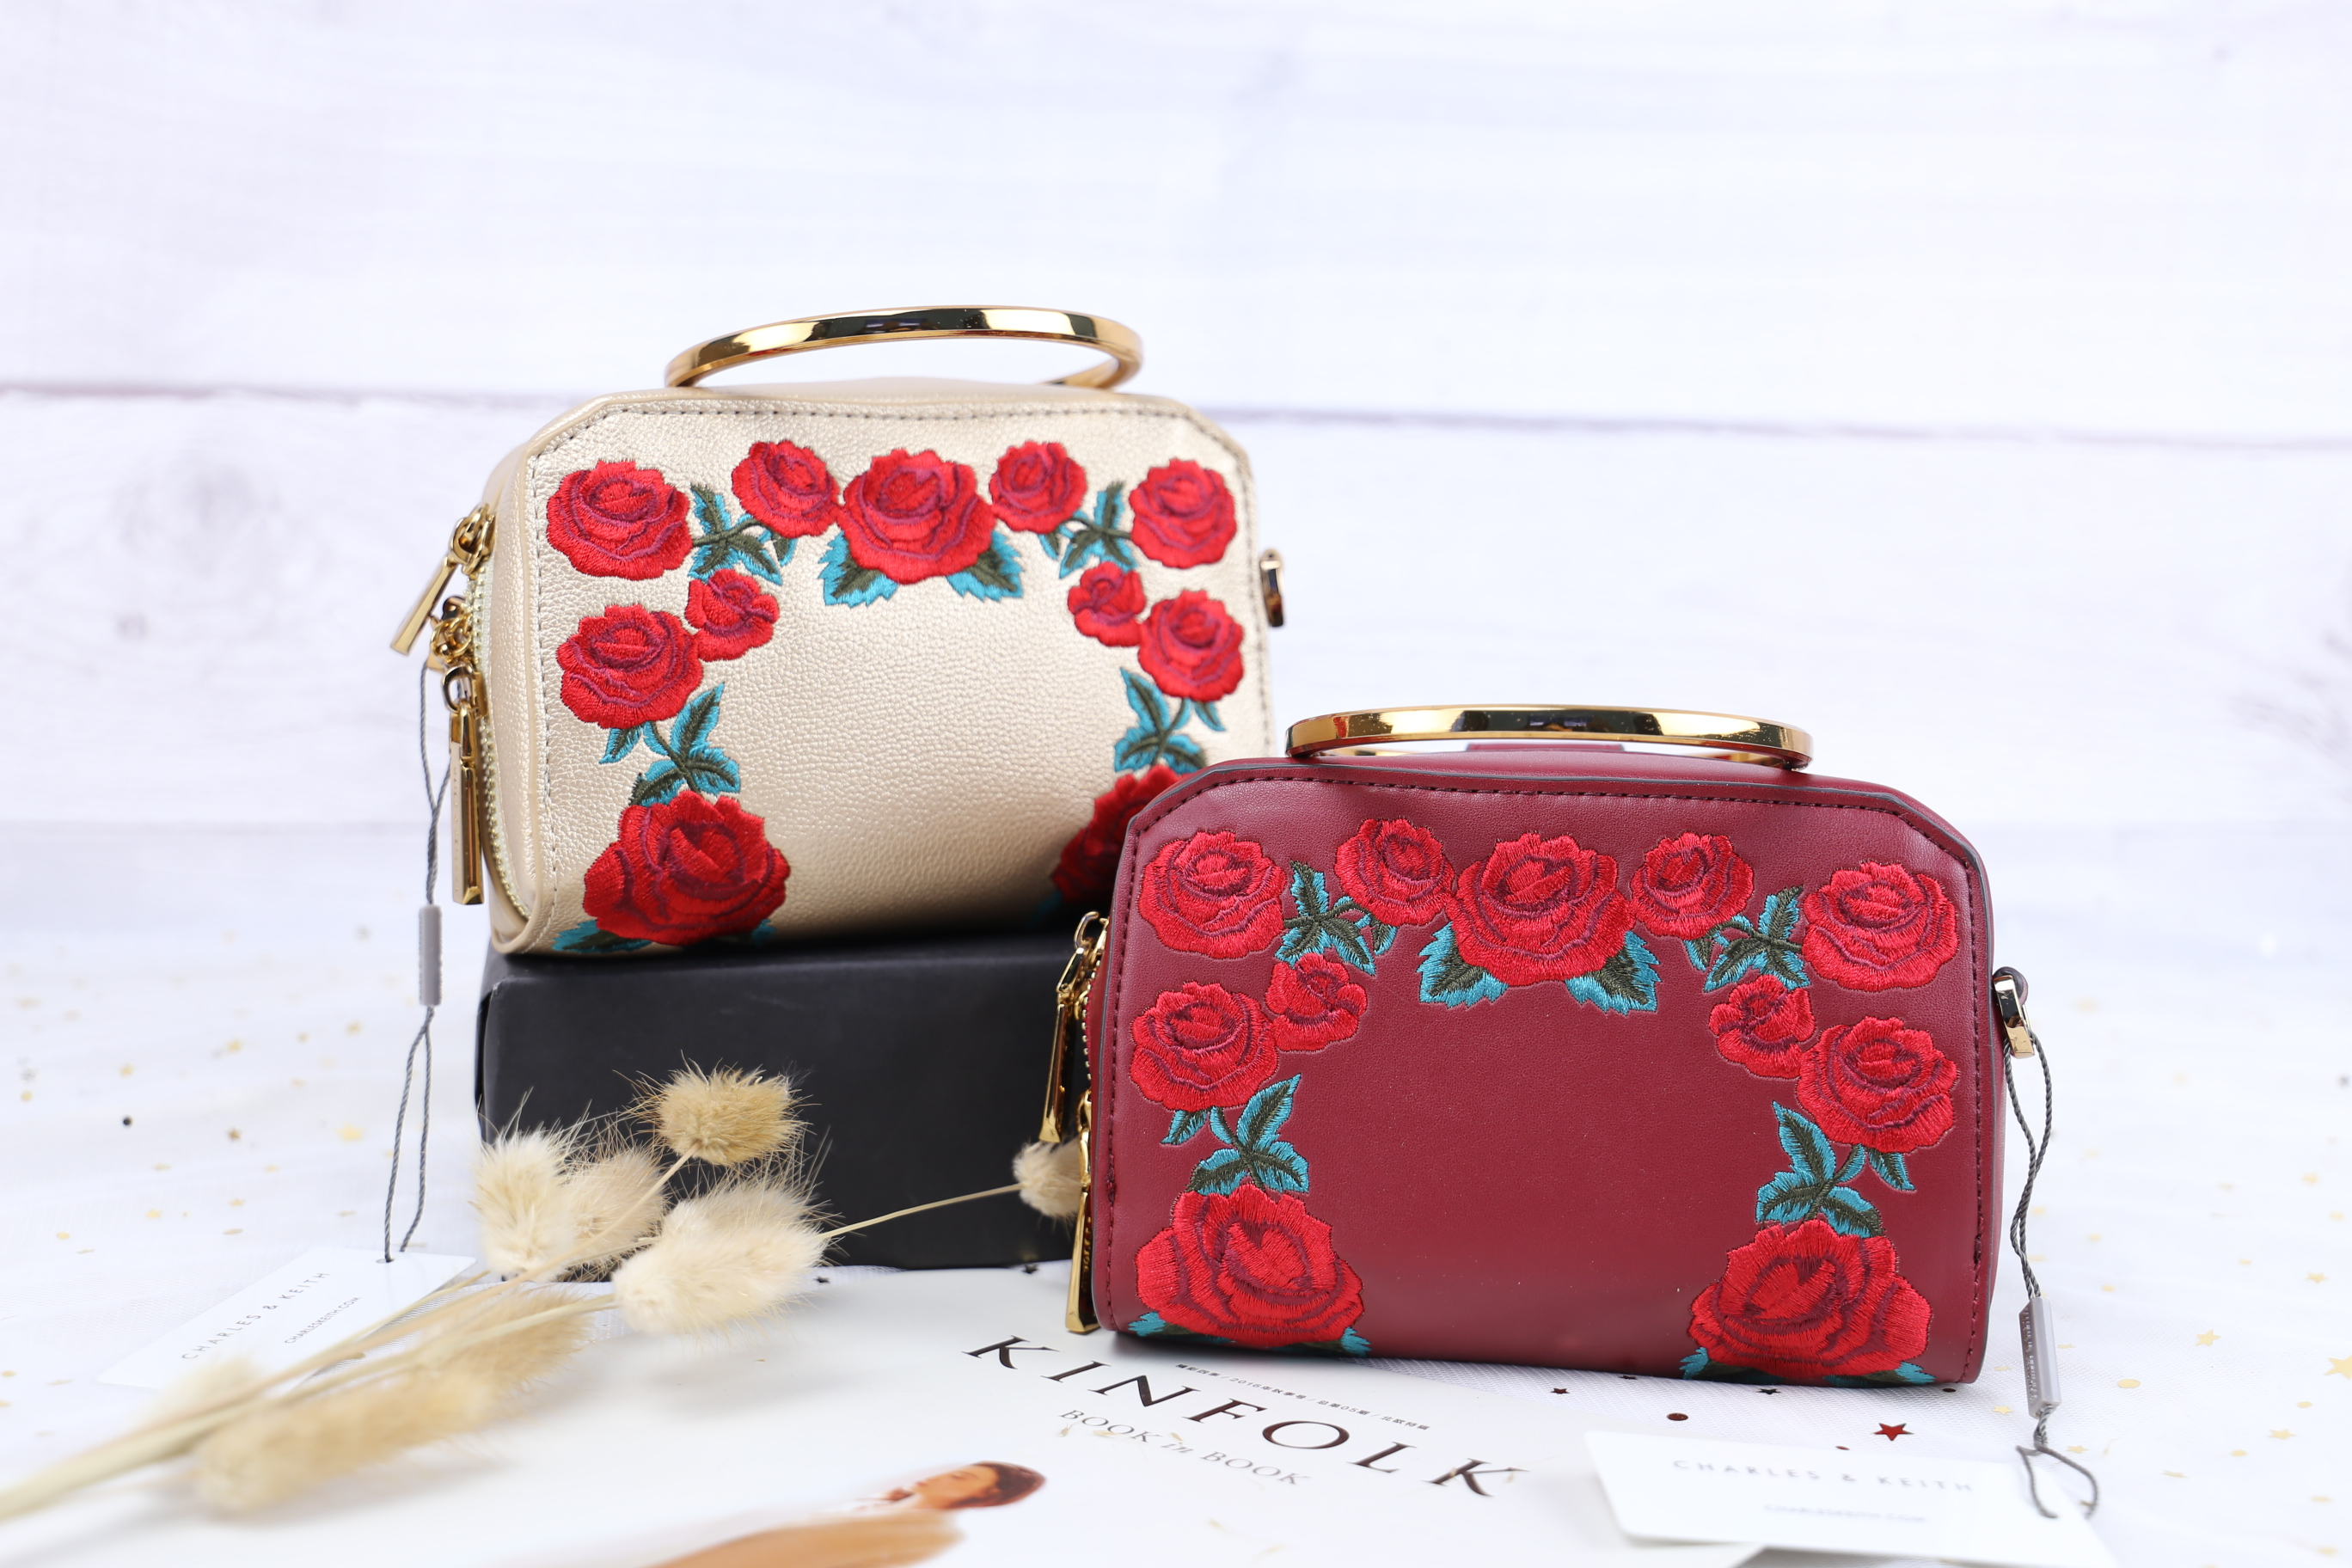 CHARLES & KIETH Rose Embroidery Sling Bag